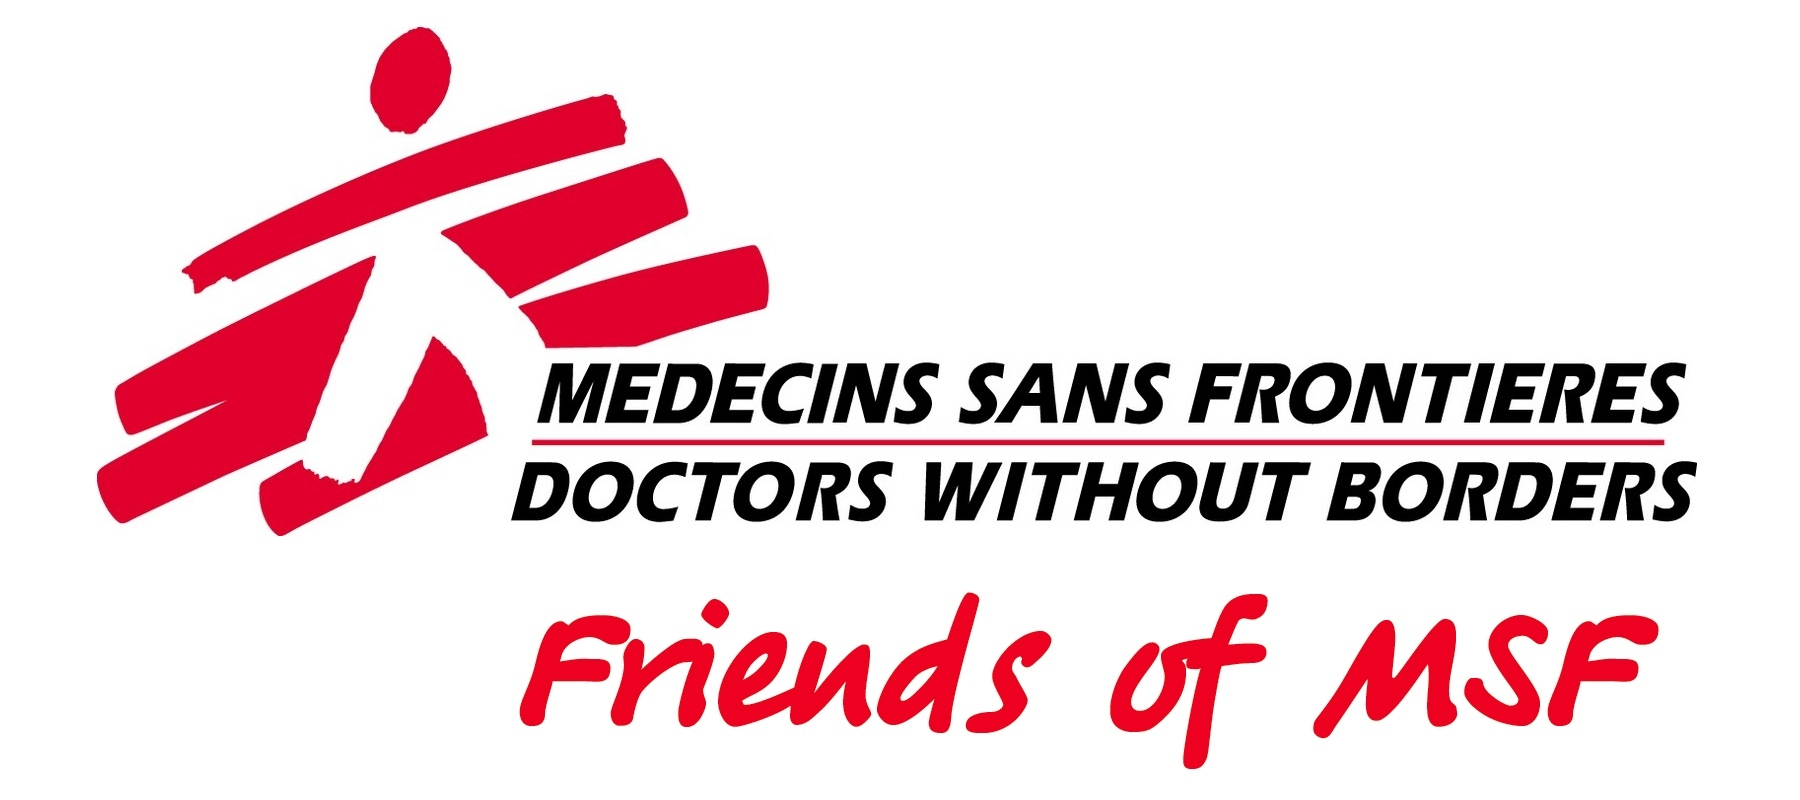 Ryerson University Friends Of Msf Doctors Without Borders